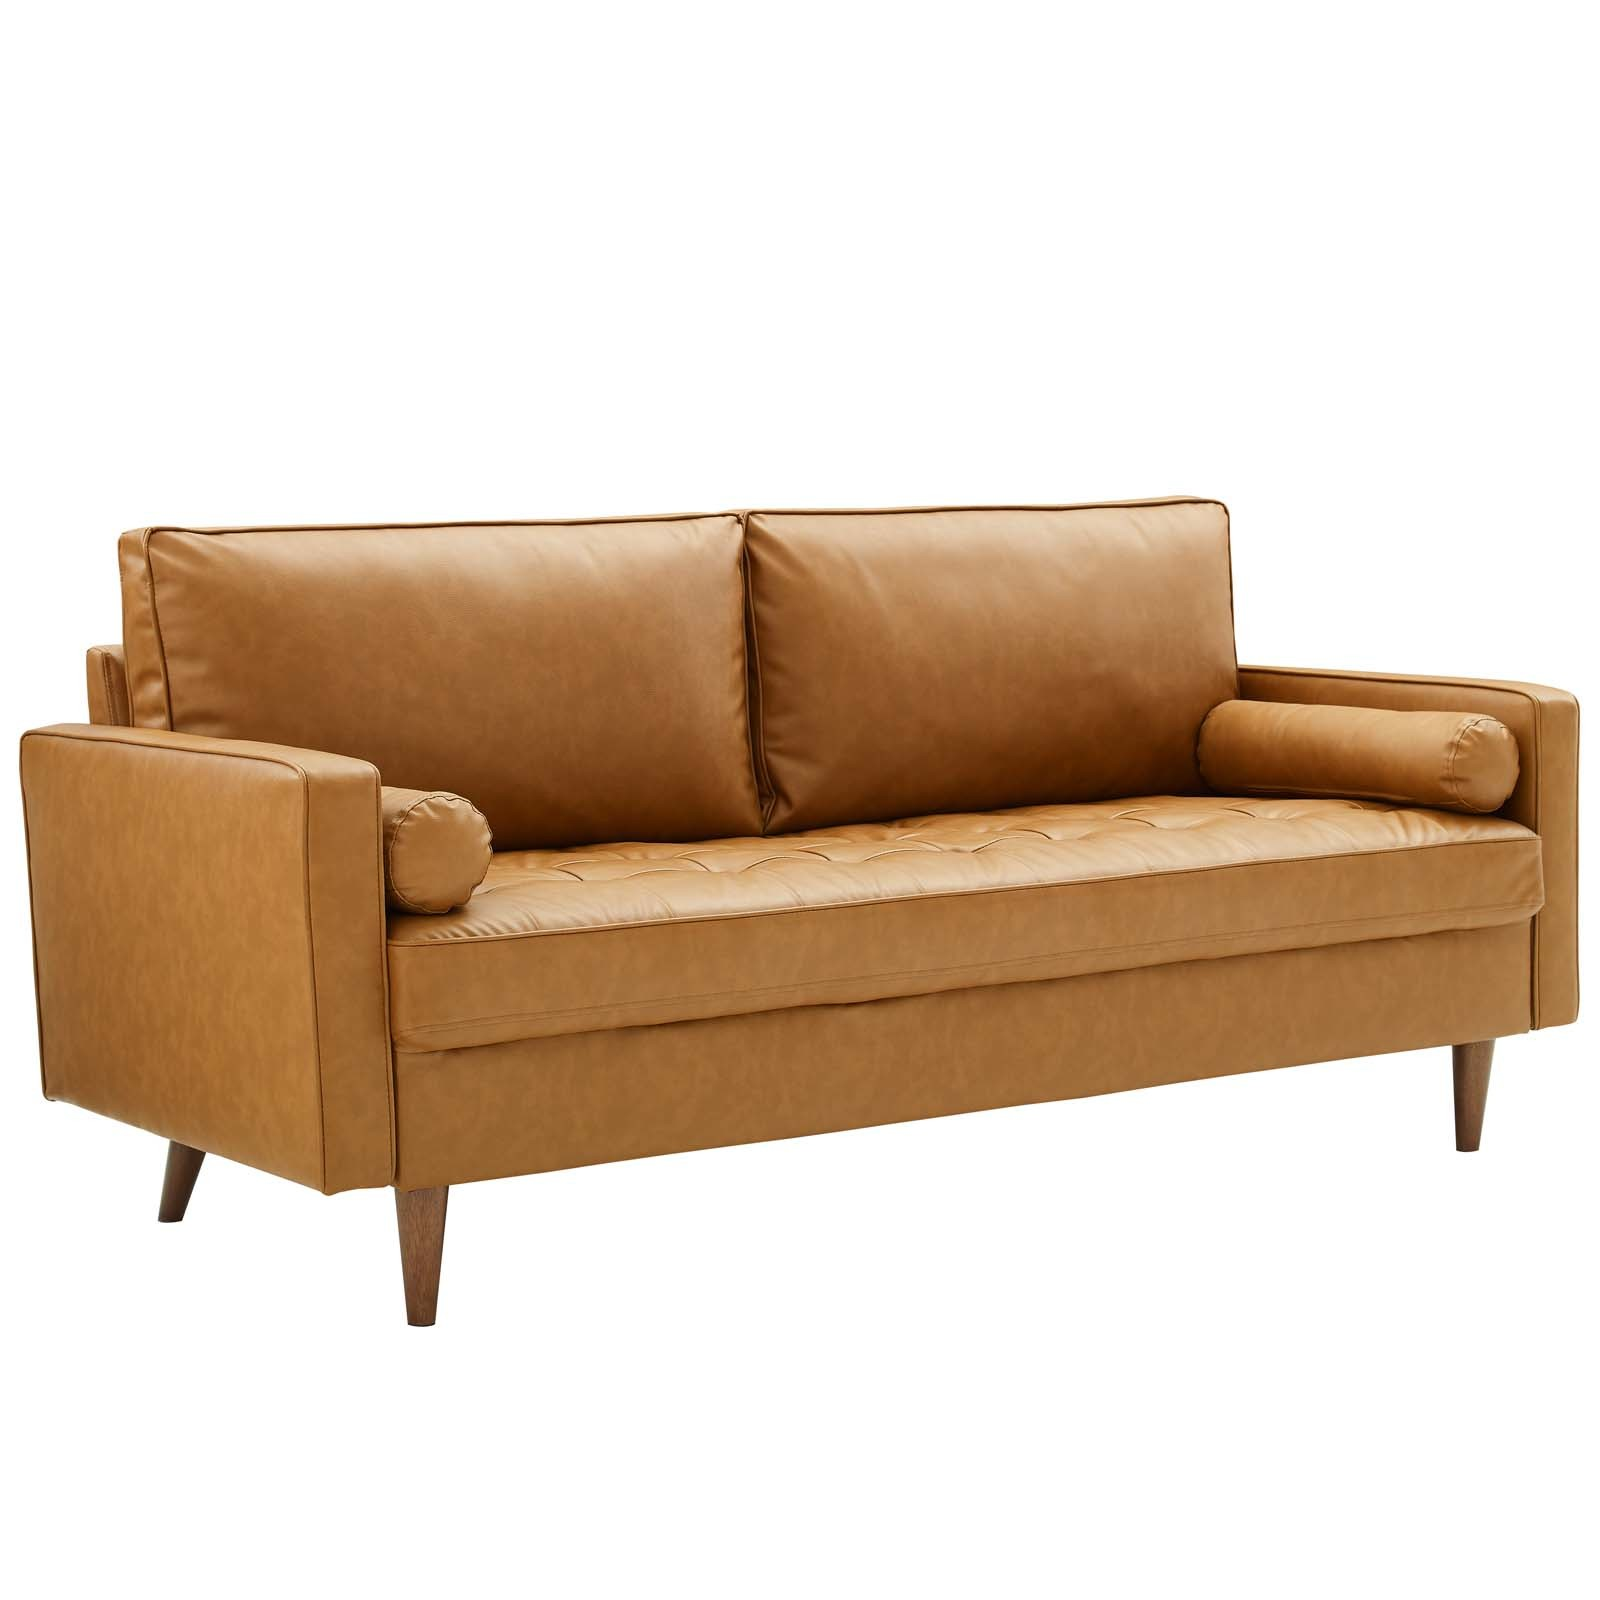 Valour Upholstered Faux Leather Sofa in Tan